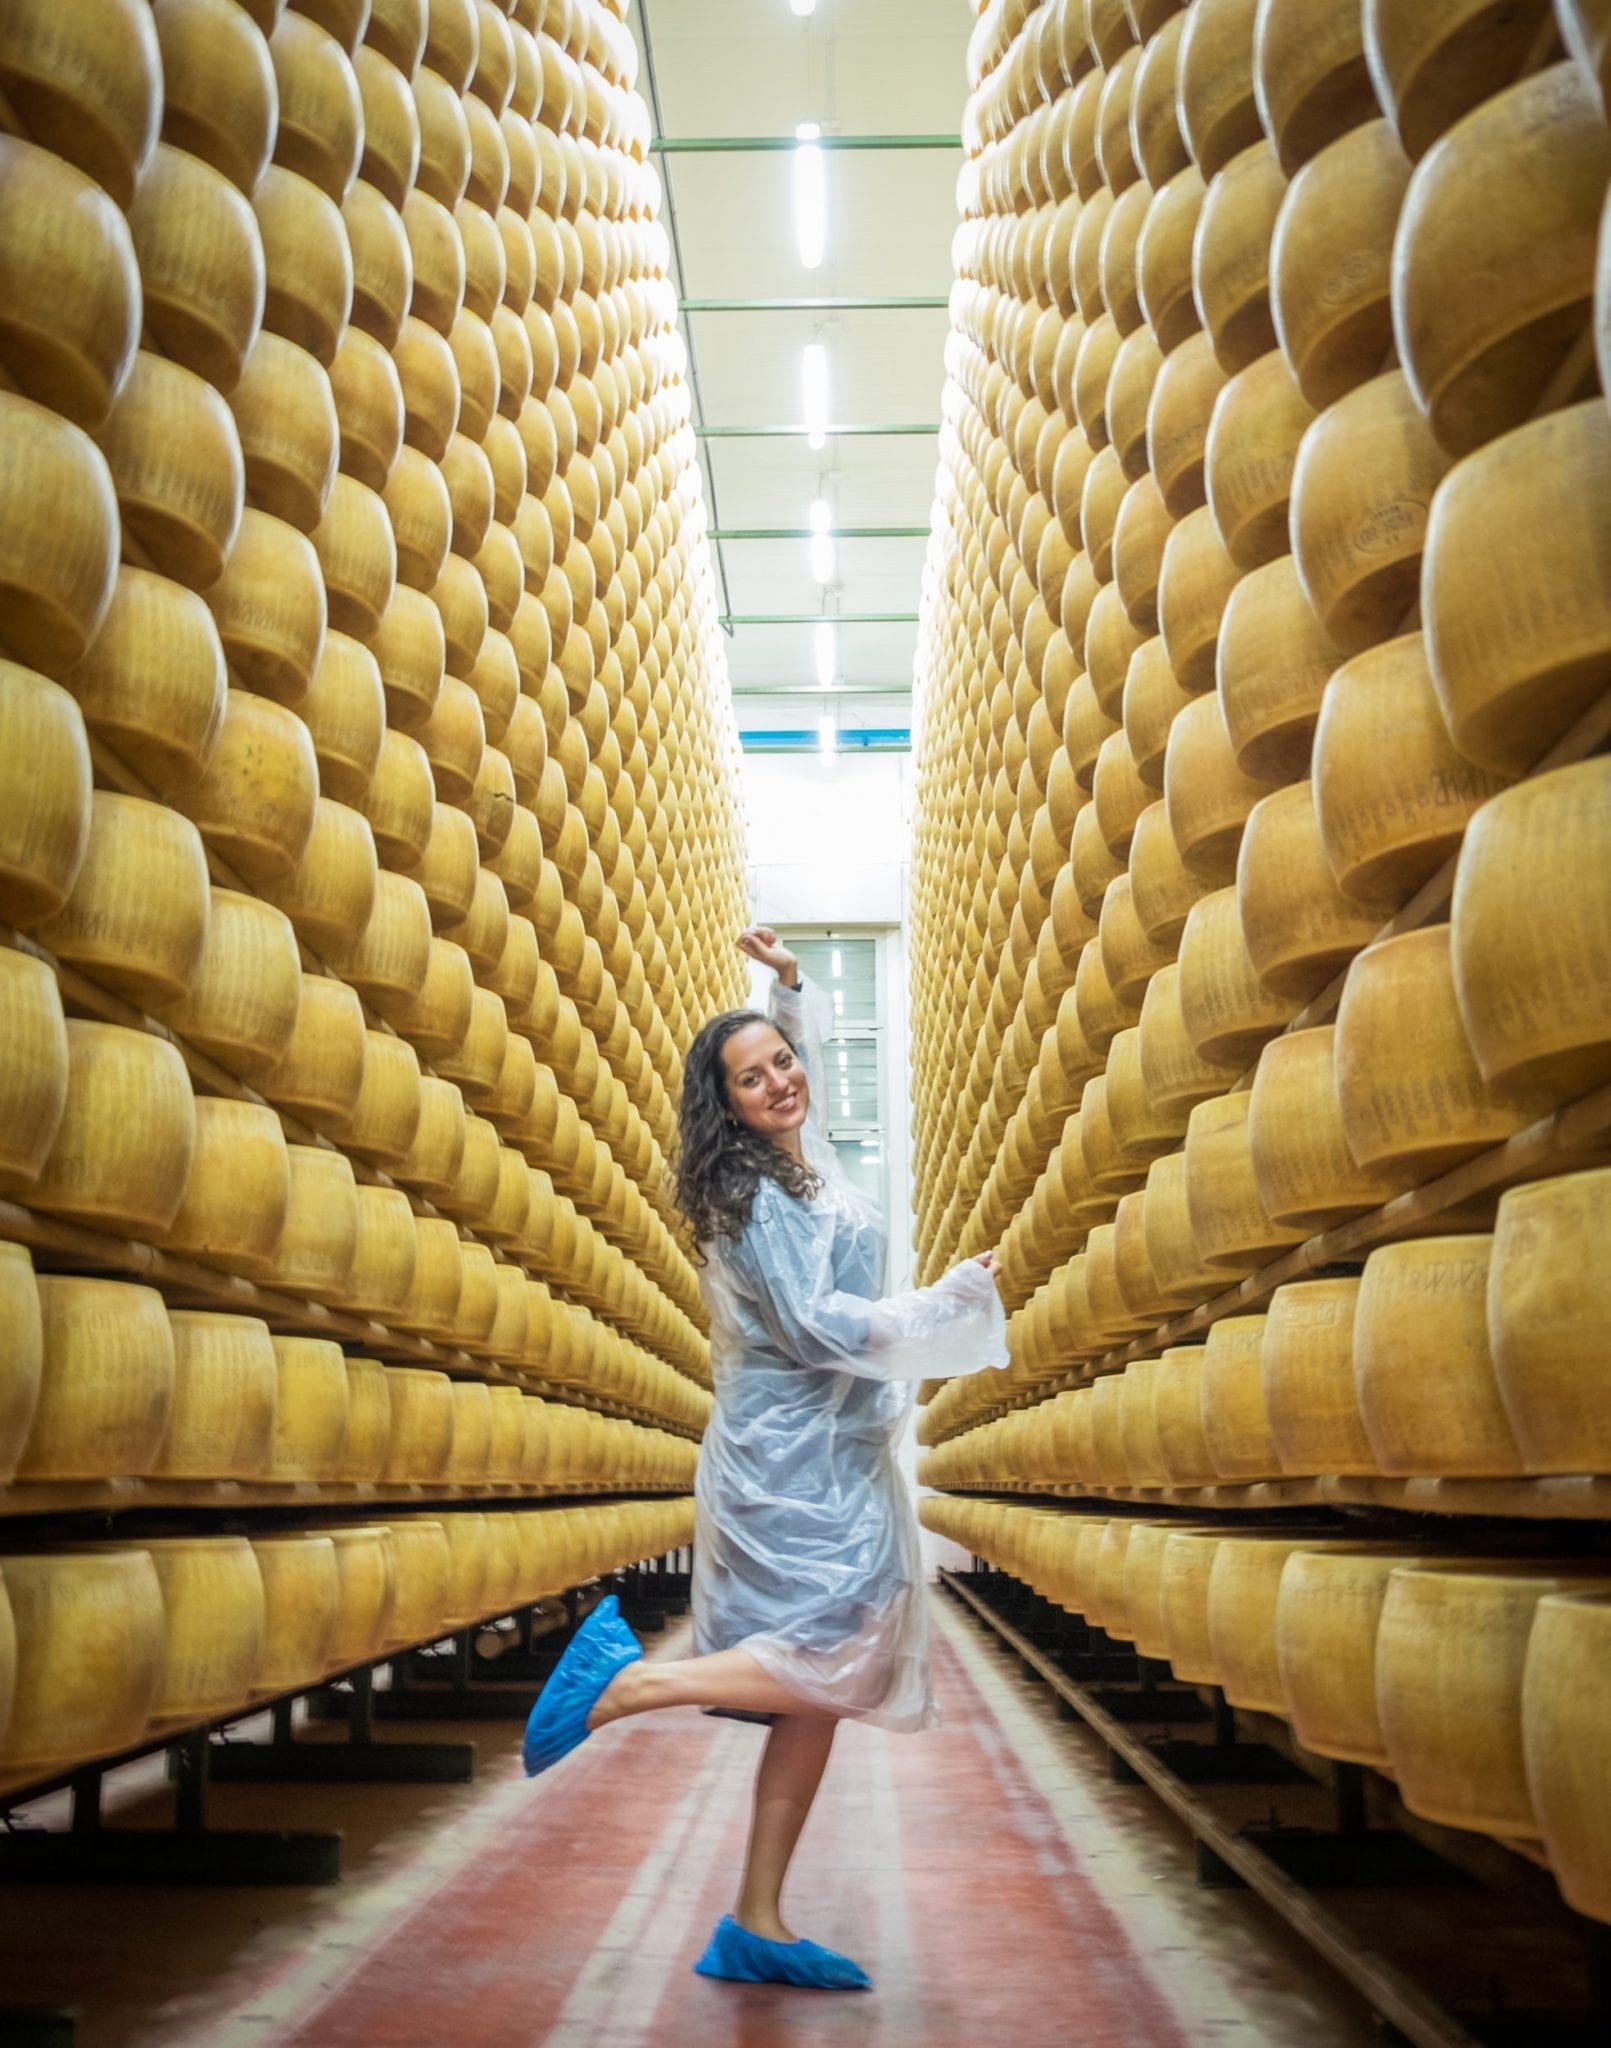 Kate poses with one foot in the air in the middle of the aisle in the cheese factory, surrounded by rows and rows of cheese.